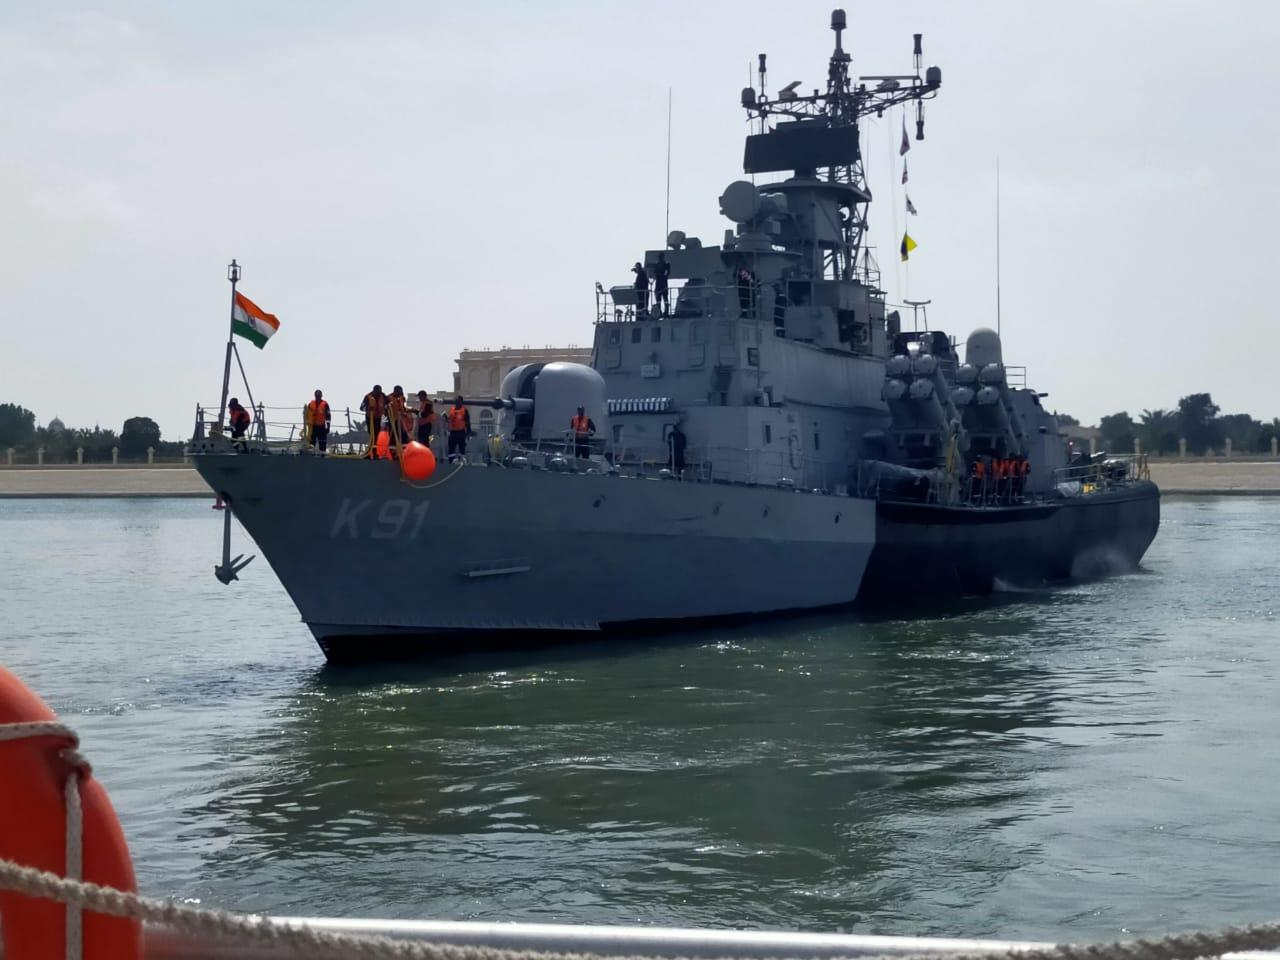 In a manifestation of growing defence relations between the UAE and India, an Indian Navy missile boat, INS Pralaya is participating at the ongoing show.